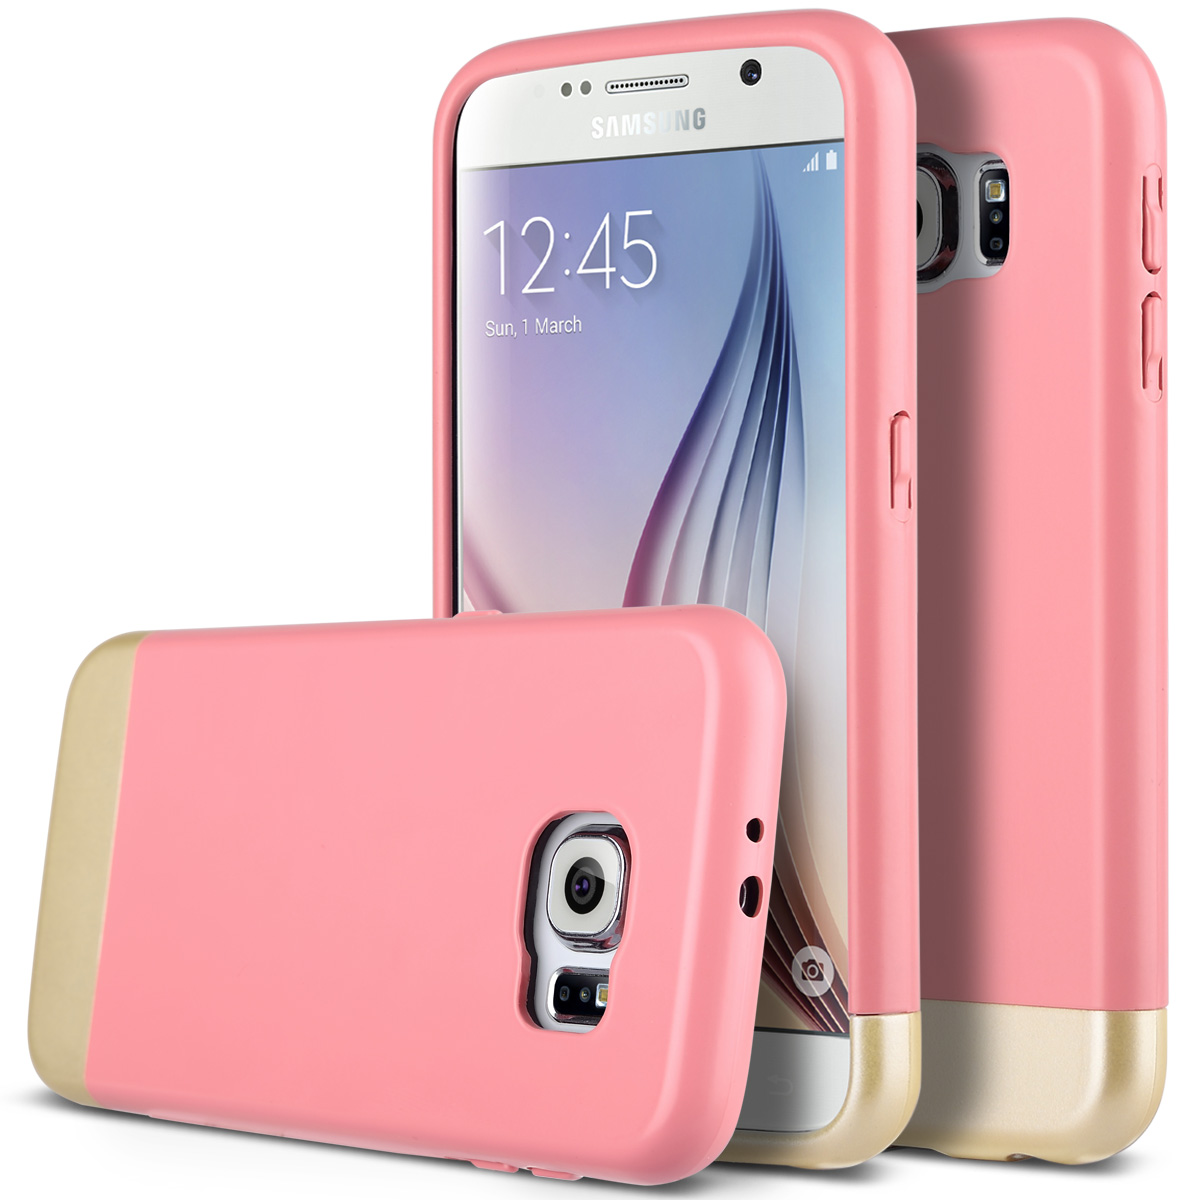 ULAK Galaxy S6 Case, Hybrid Slider Style Hard Case with Soft TPU Interior & Vibrant Trendy Color for Samsung Galaxy S6